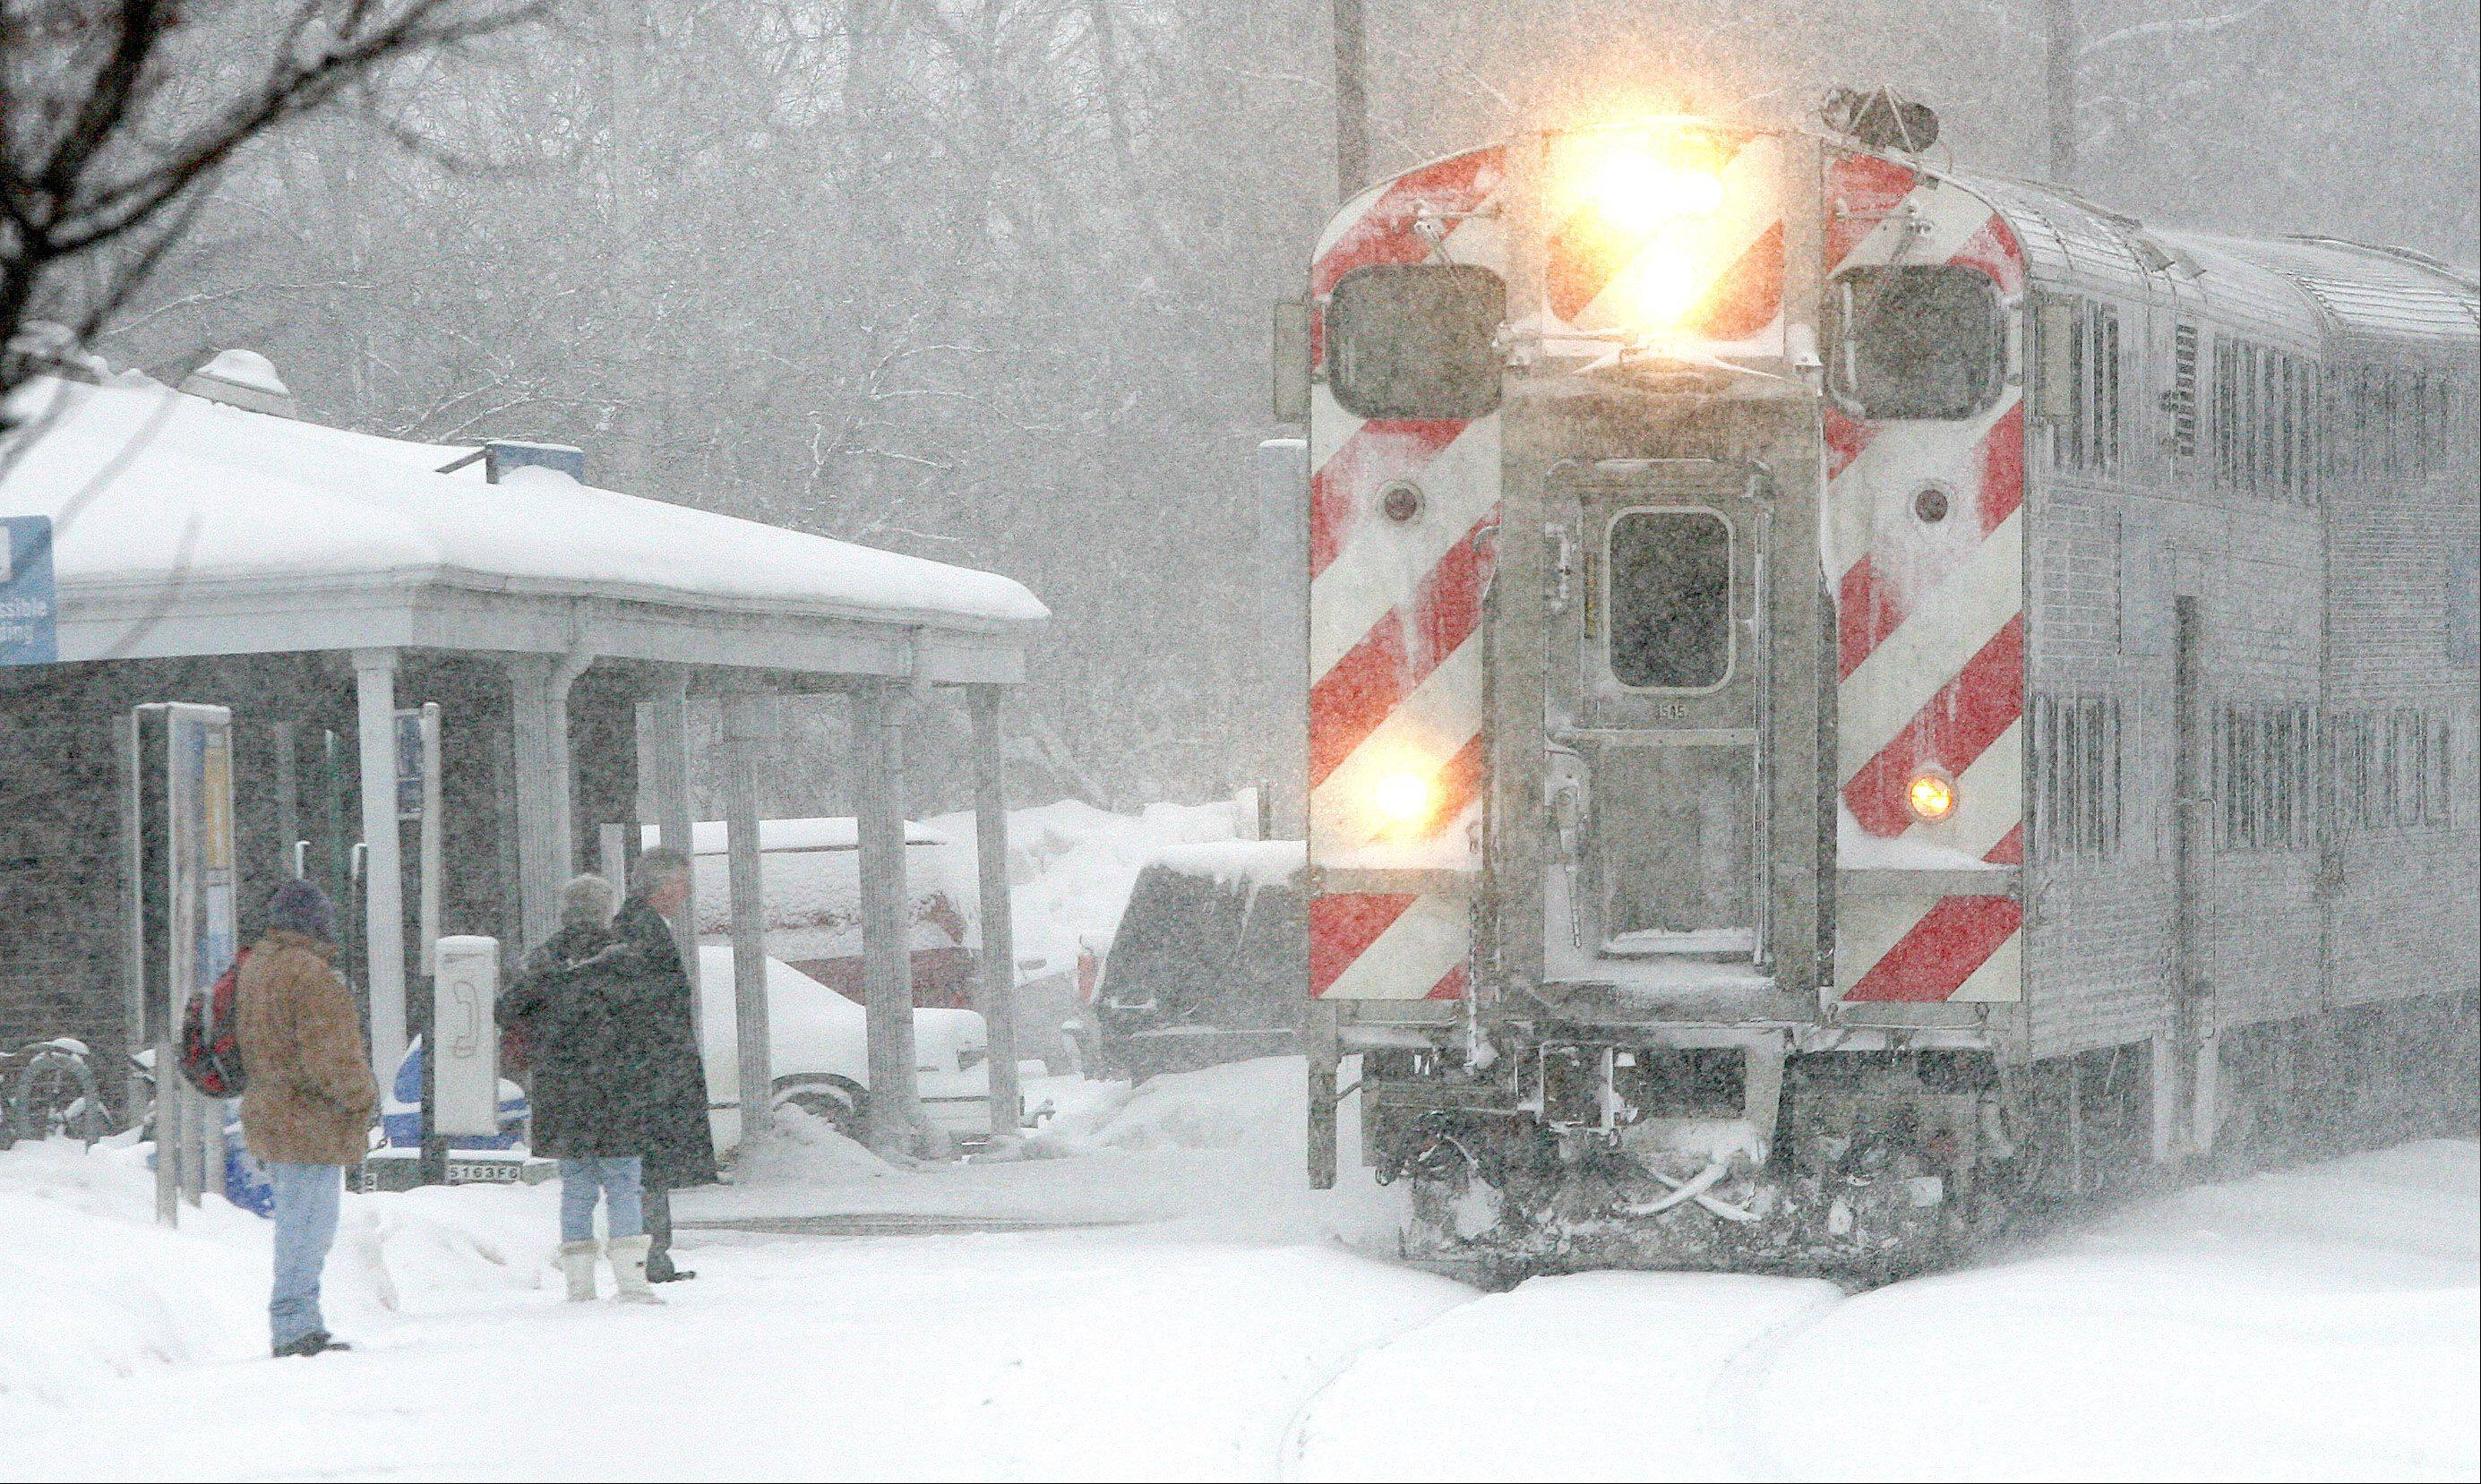 Metra thinks free rides and selling the disadvantages of driving � especially in bad weather � will boost passenger numbers.